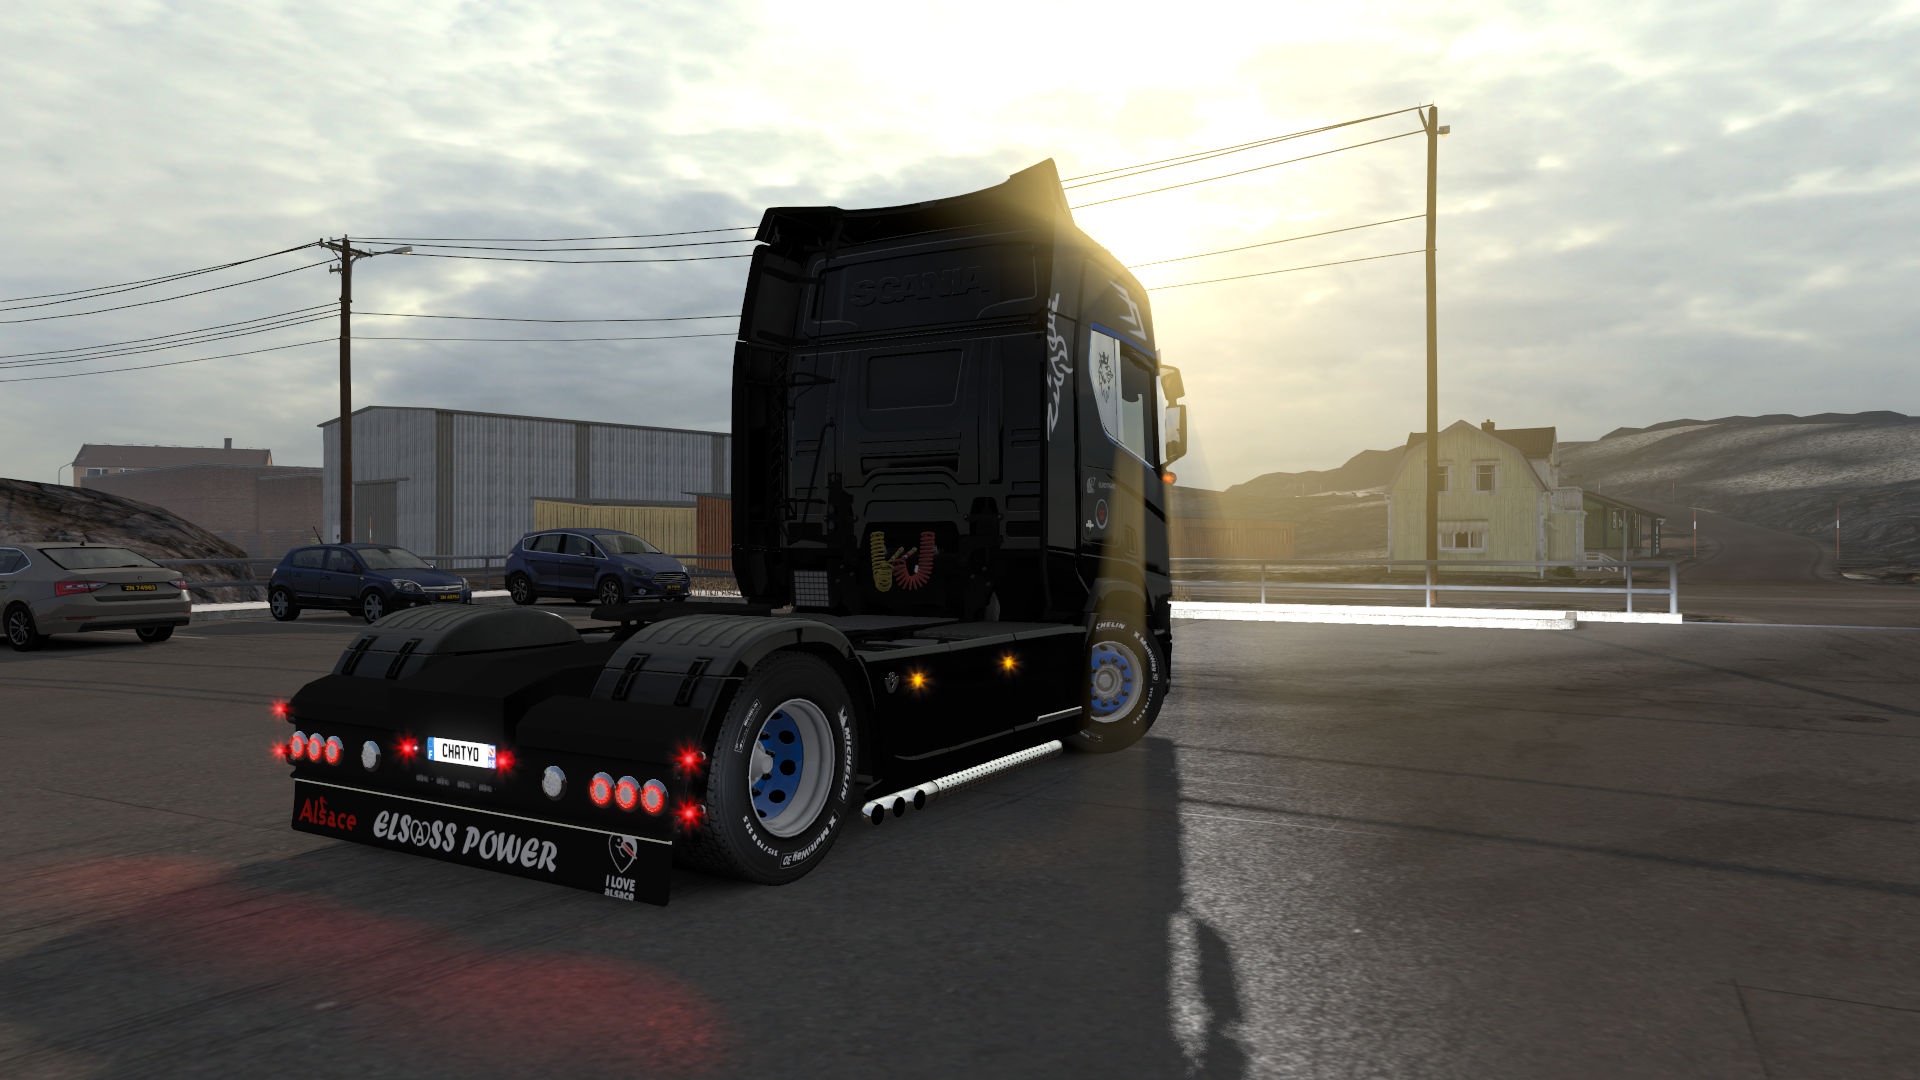 ets2_20190427_205154_00.png